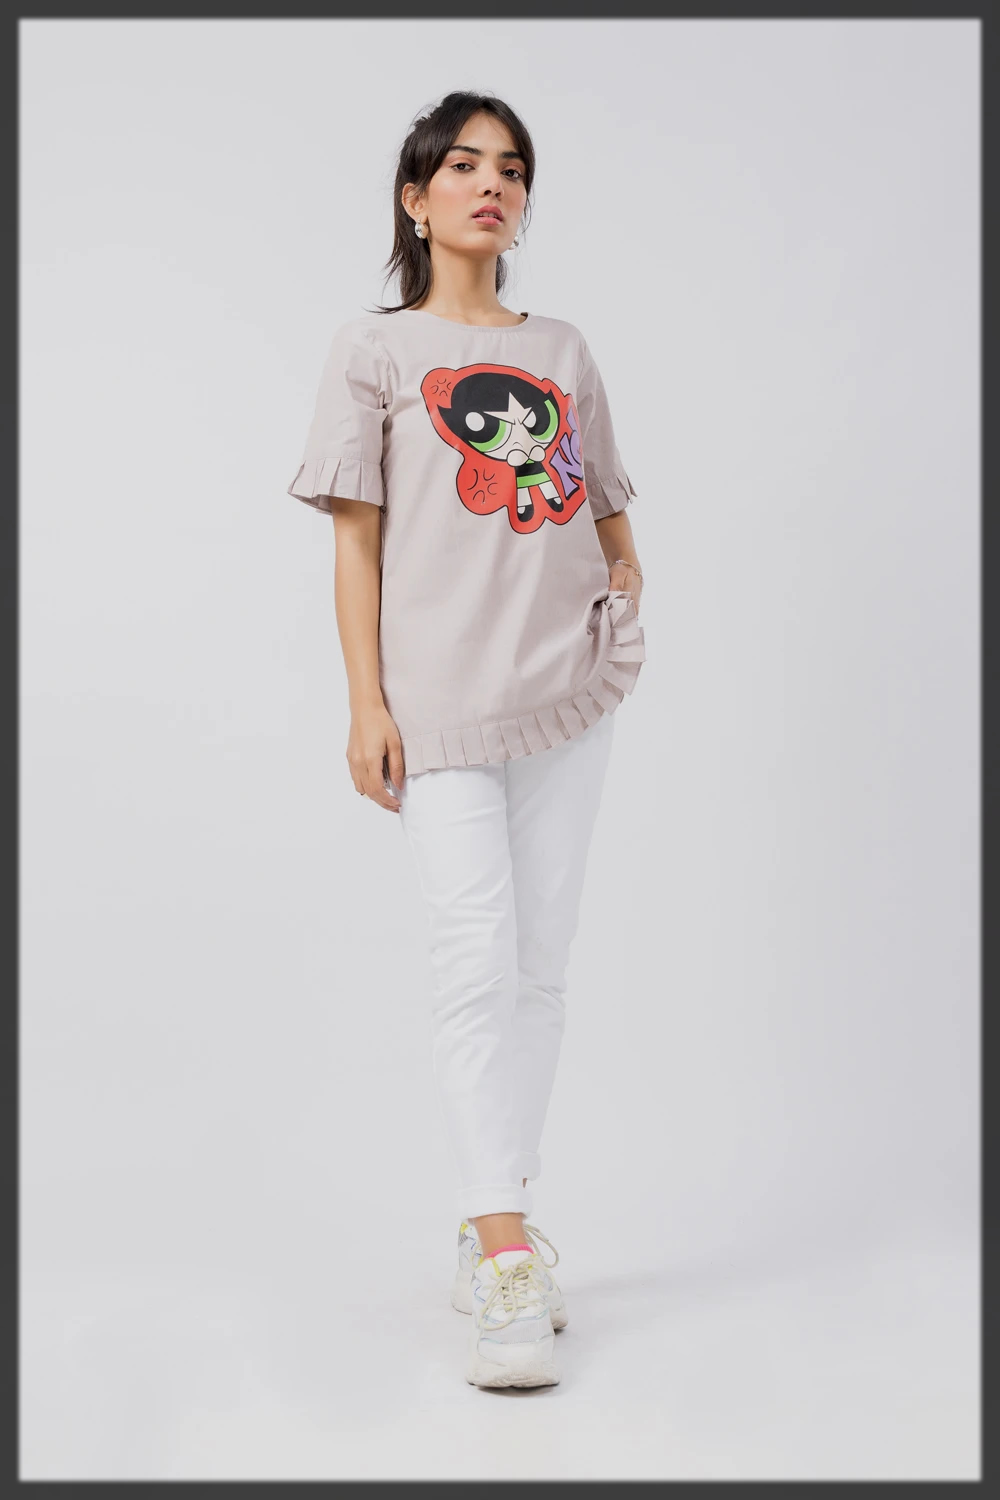 POWERPUFF WOVEN TOP BY BREAKOUT